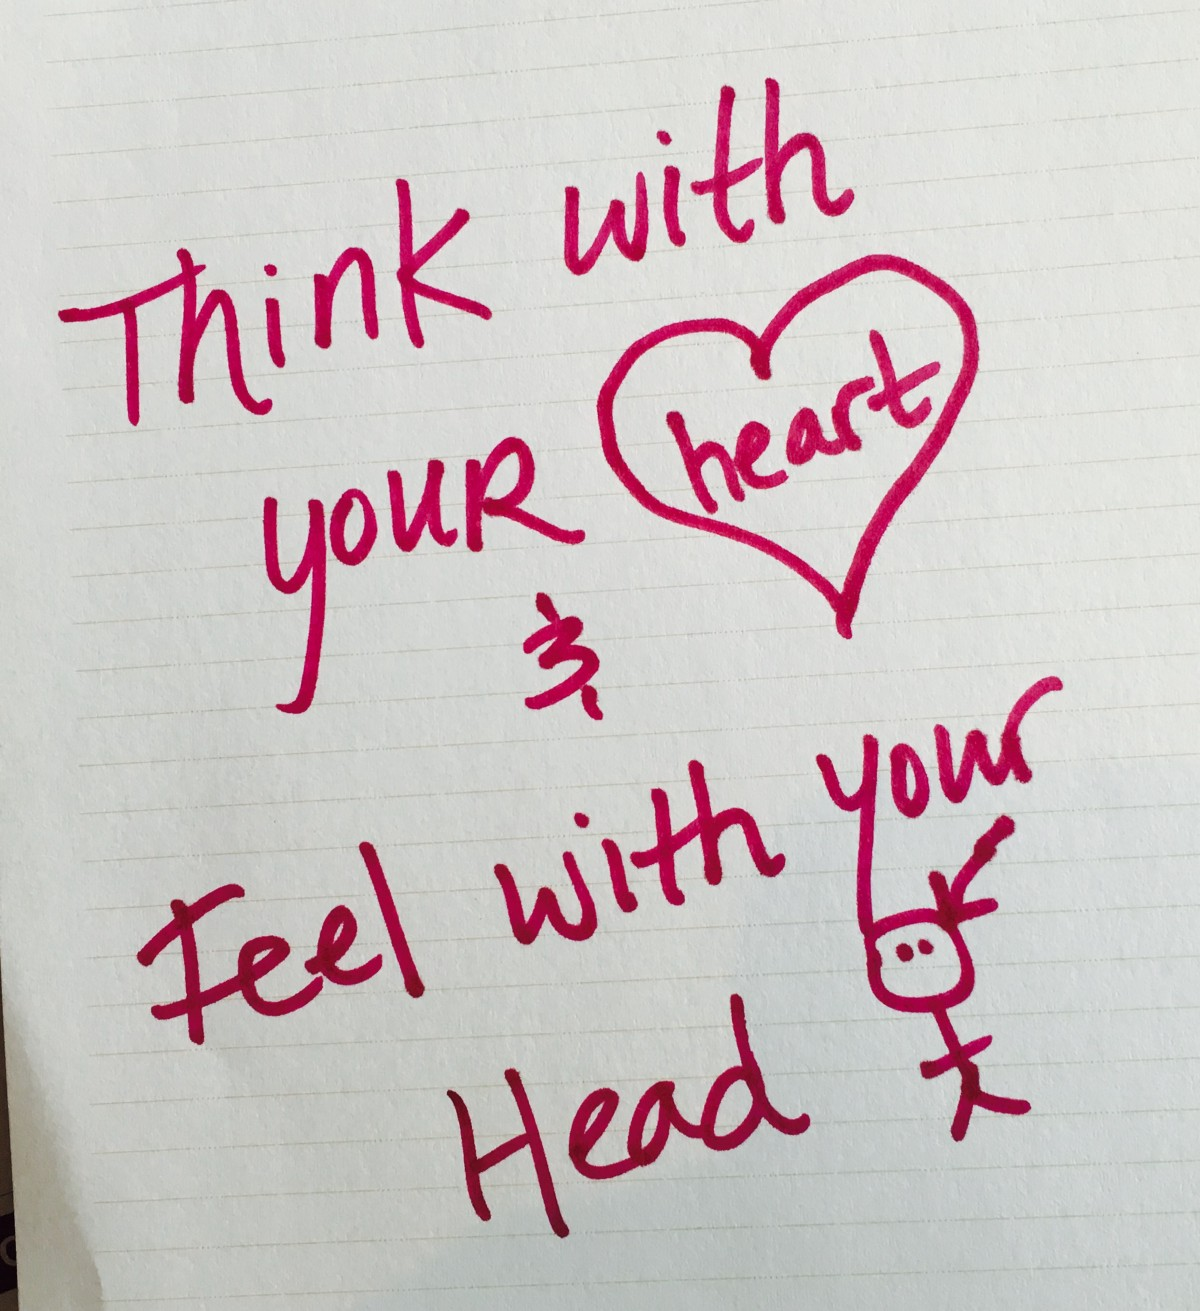 Are You Heart-Centered? You Should Think With Your Heart and Feel With Your Head